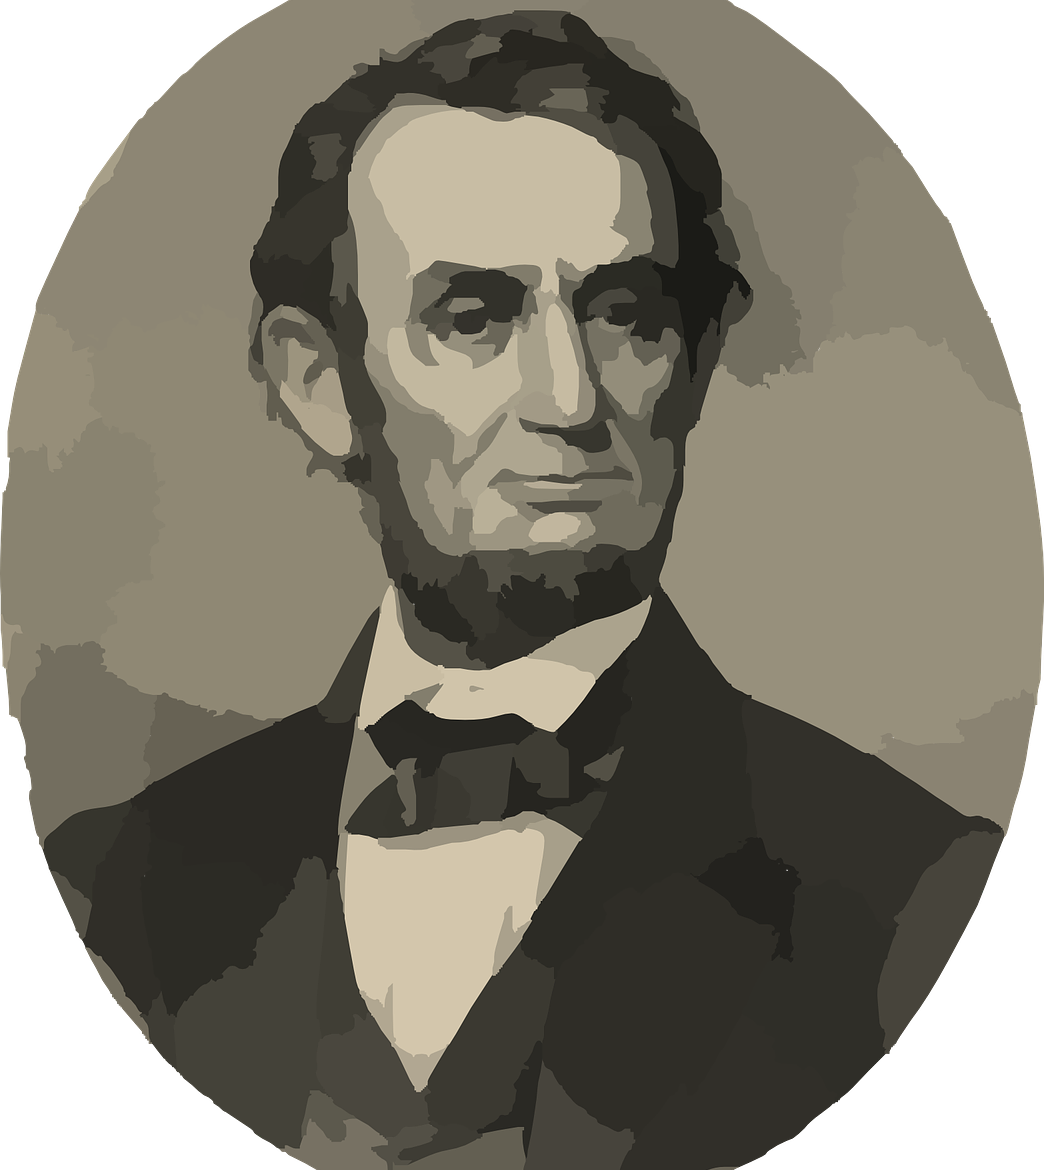 Abraham Lincoln inspiration motivation